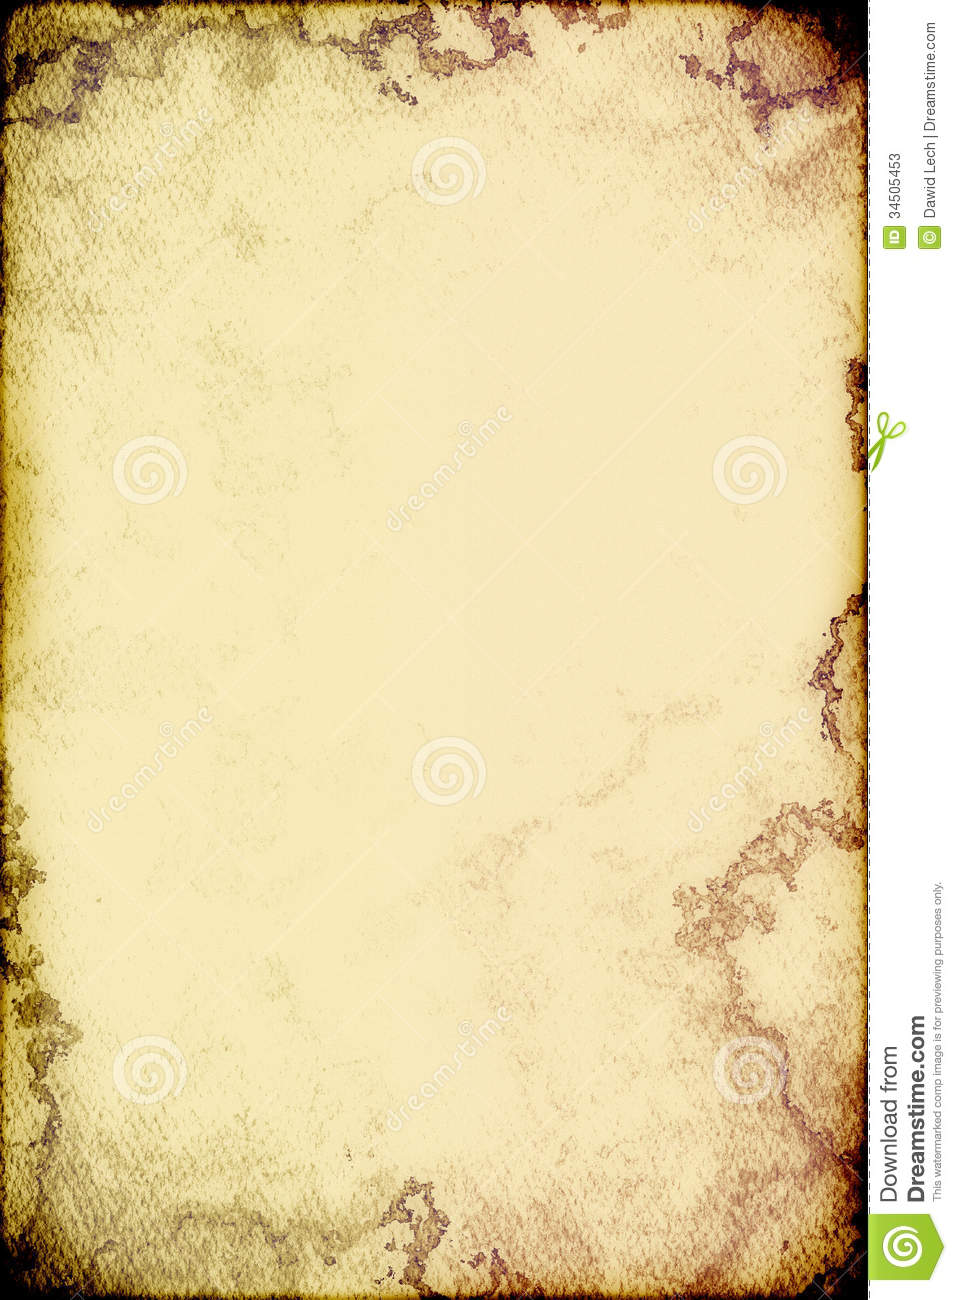 Vintage Poster For Background Stock Photos - Image: 34505453